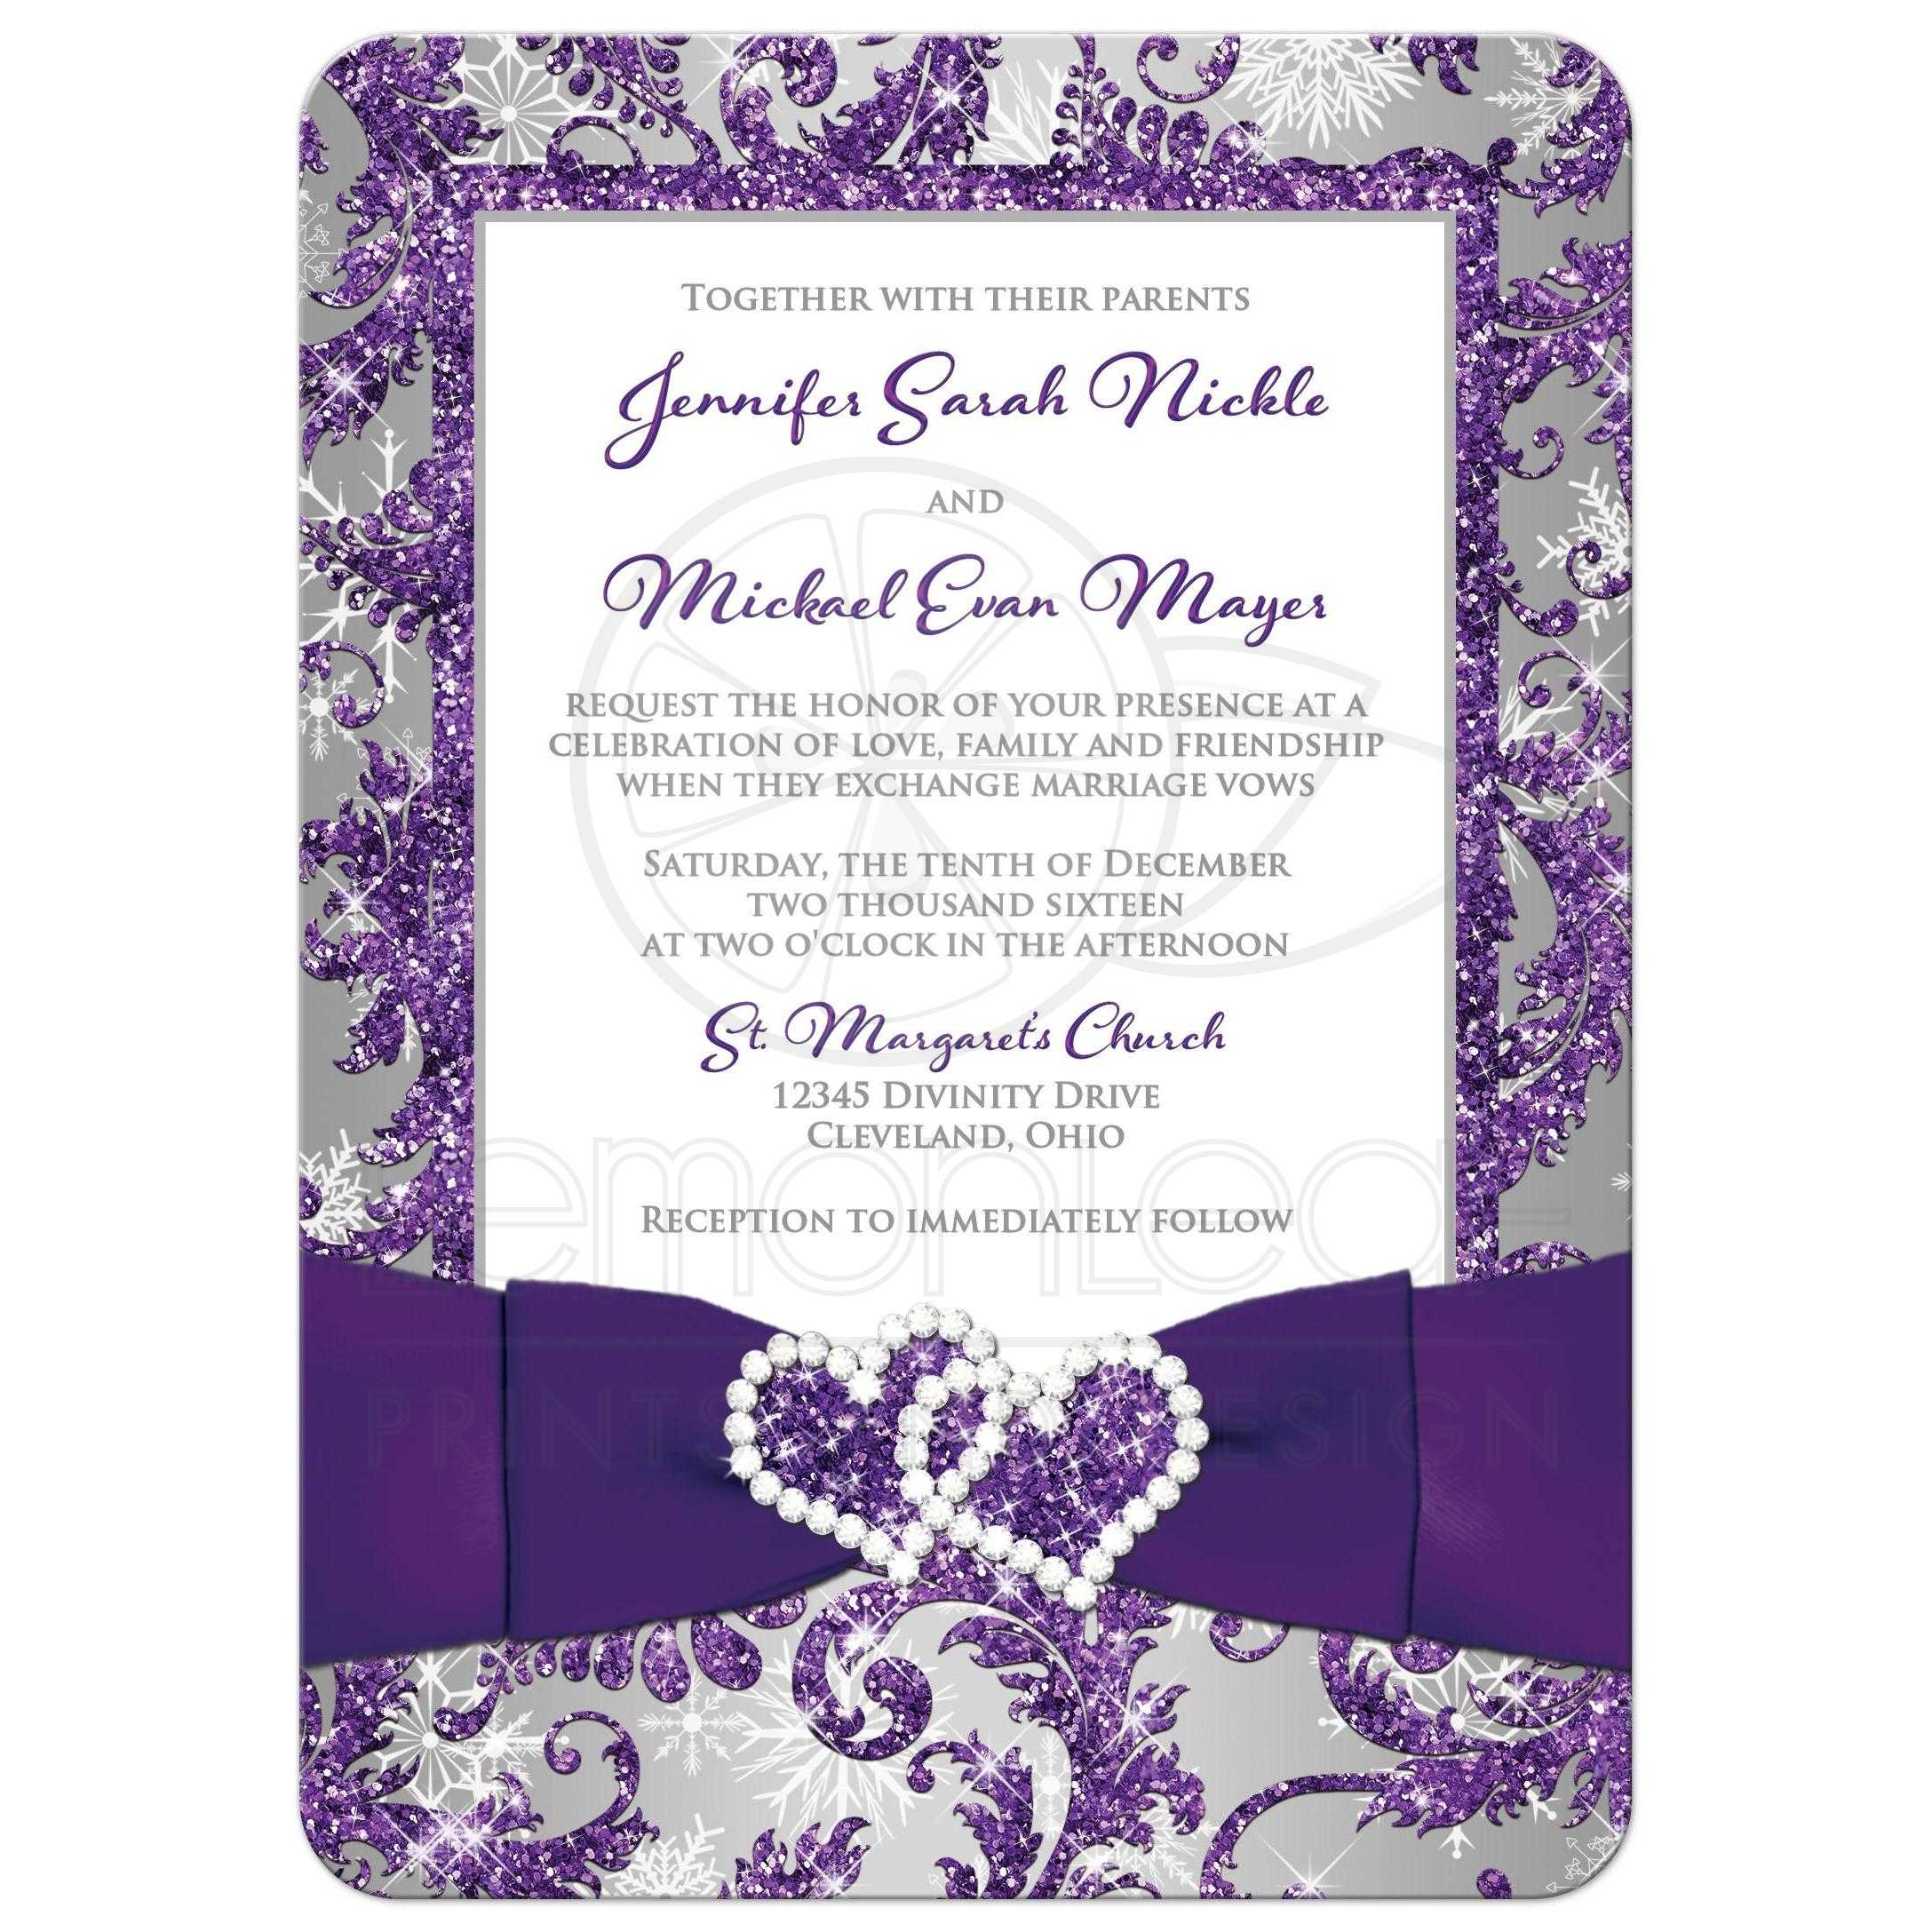 ... Great Winter Wonderland Photo Wedding Invitation In Ice Purple, Silver,  And White Snowflakes With ...